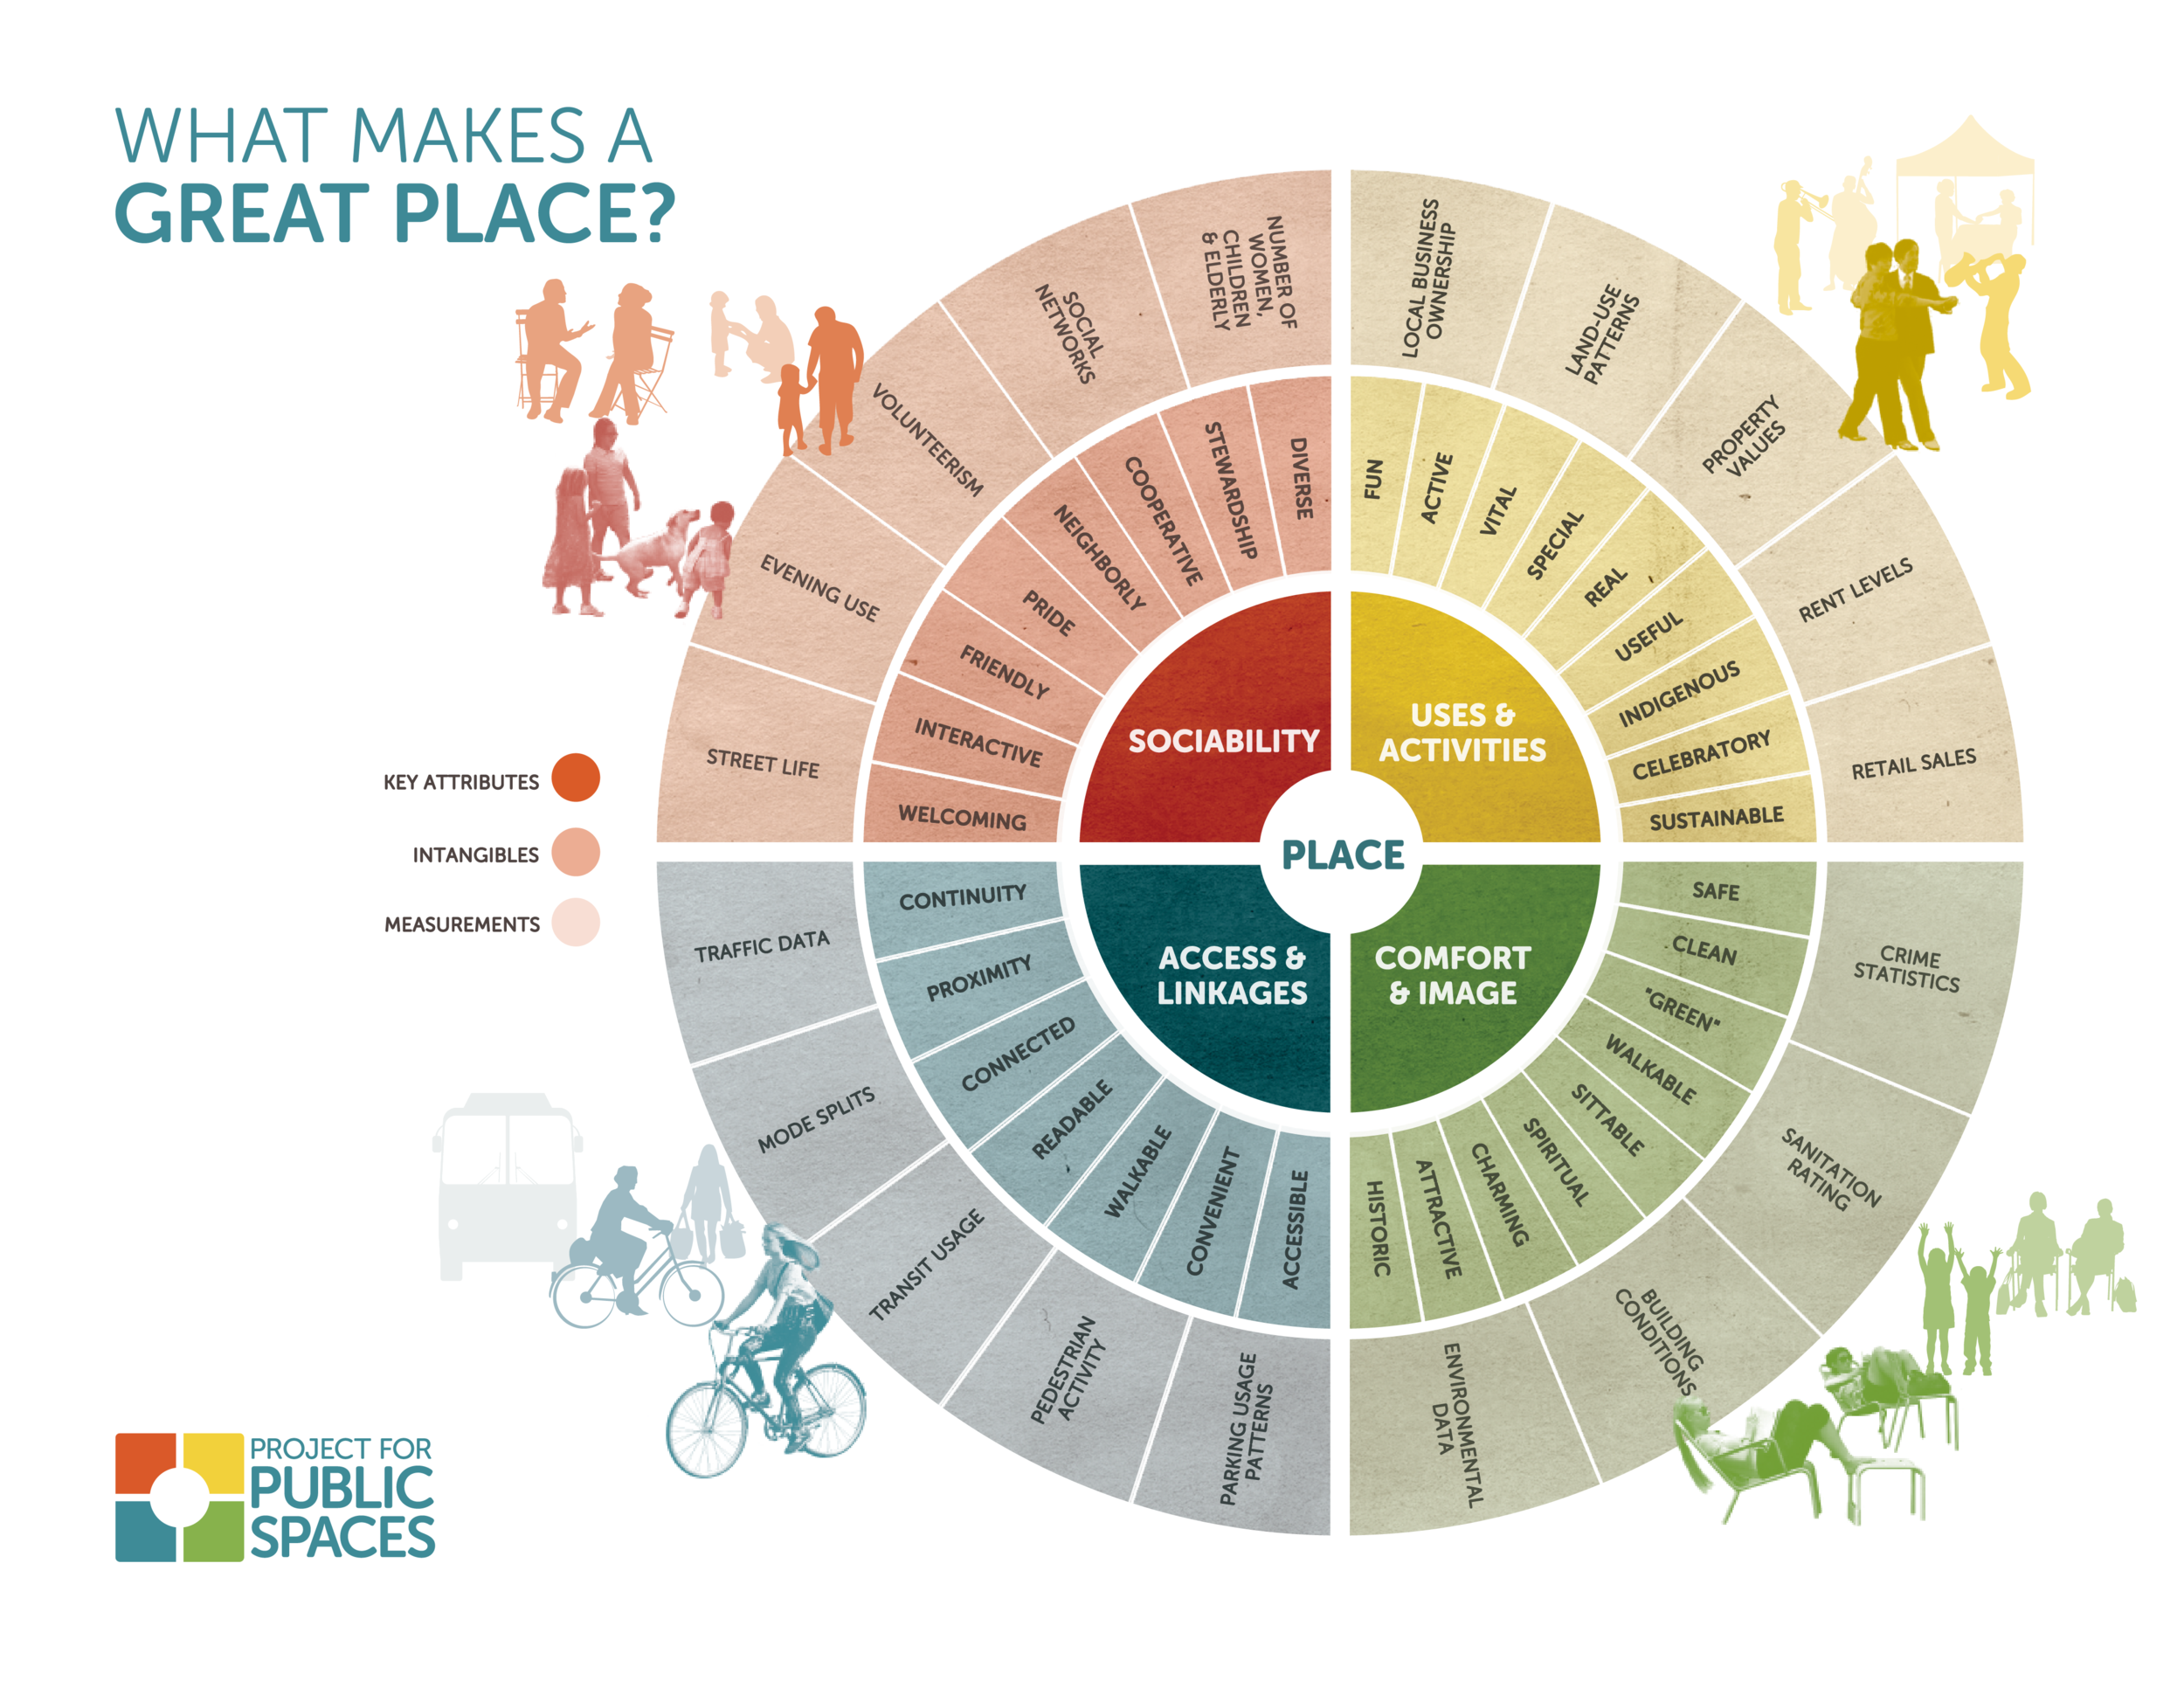 Image Source Credit:  Project For Public Spaces